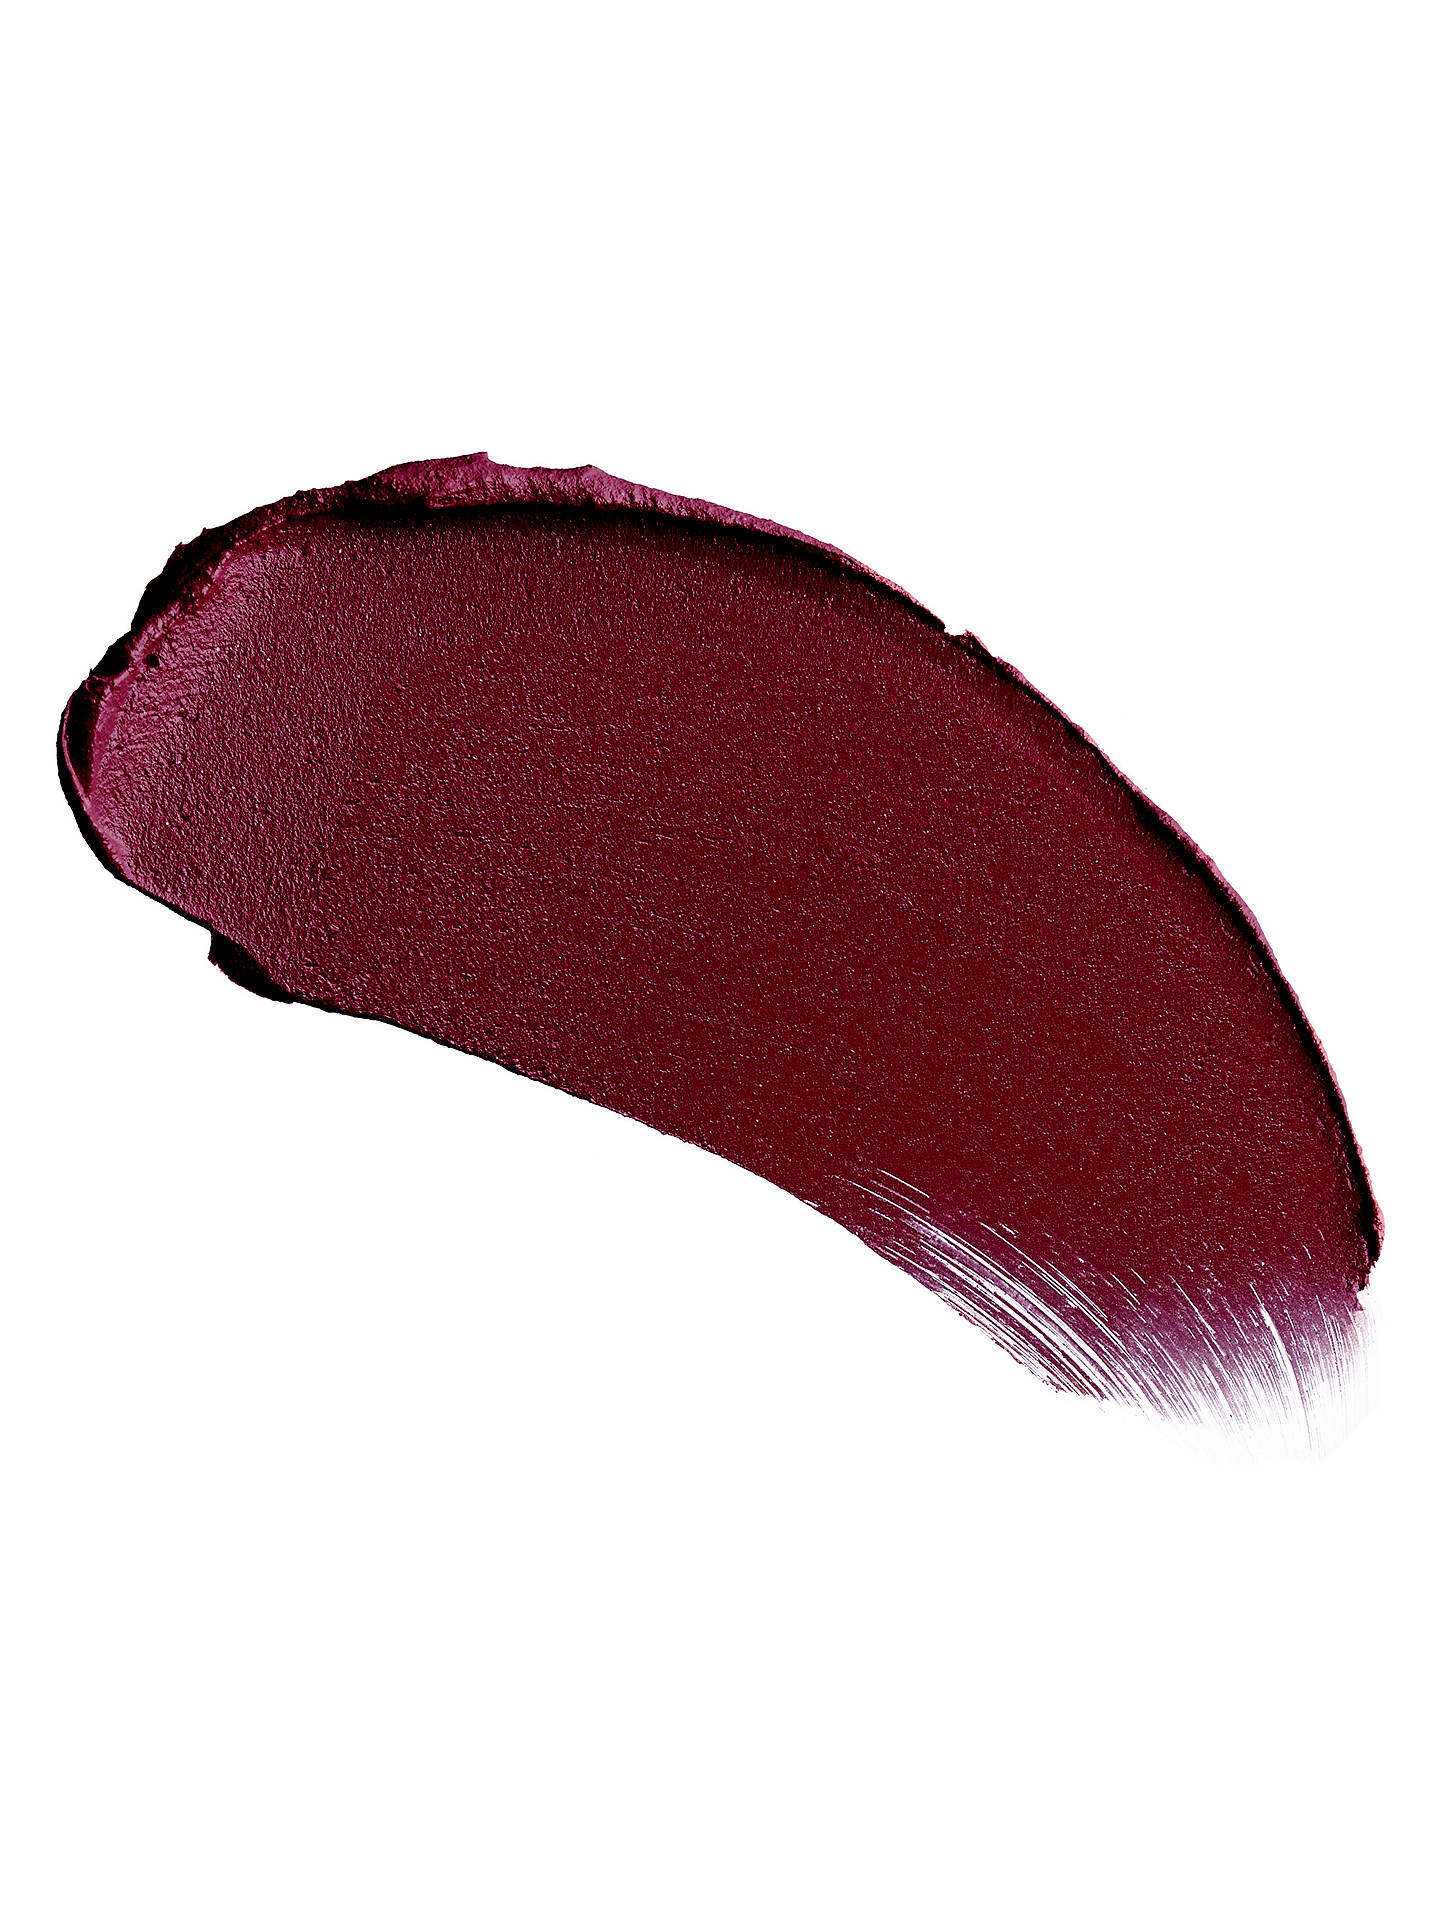 Buy Charlotte Tilbury Matte Revolution Lipstick, Glastonberry Online at johnlewis.com